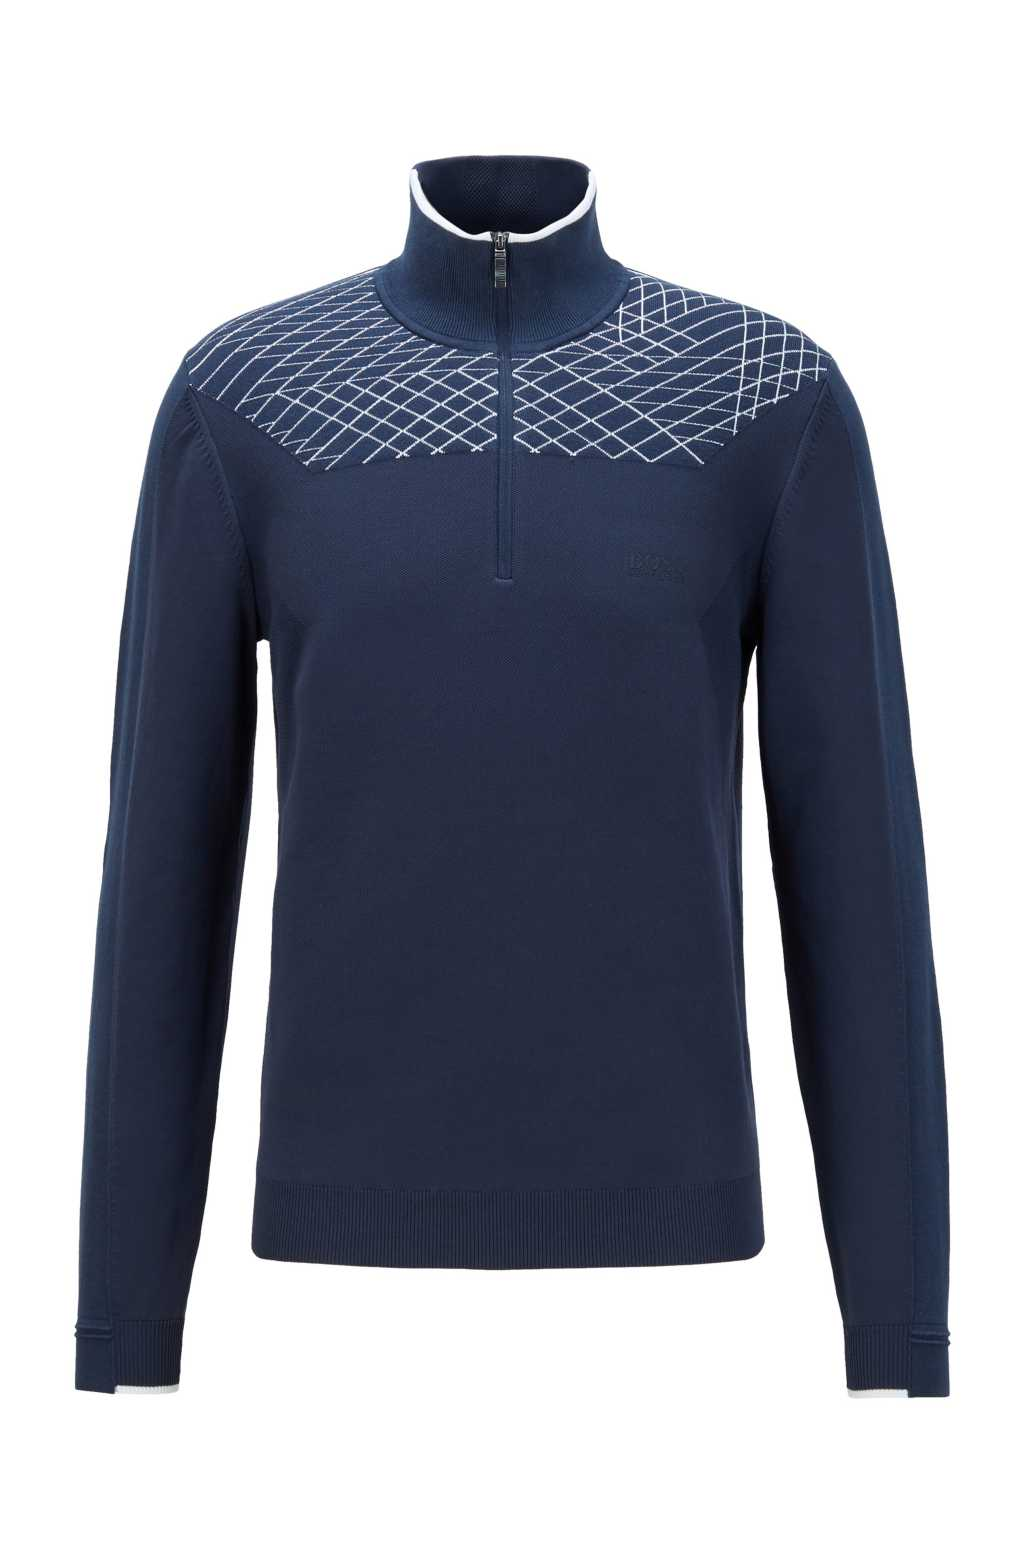 BOSS ZADEN KNITWEAR IN NAVY